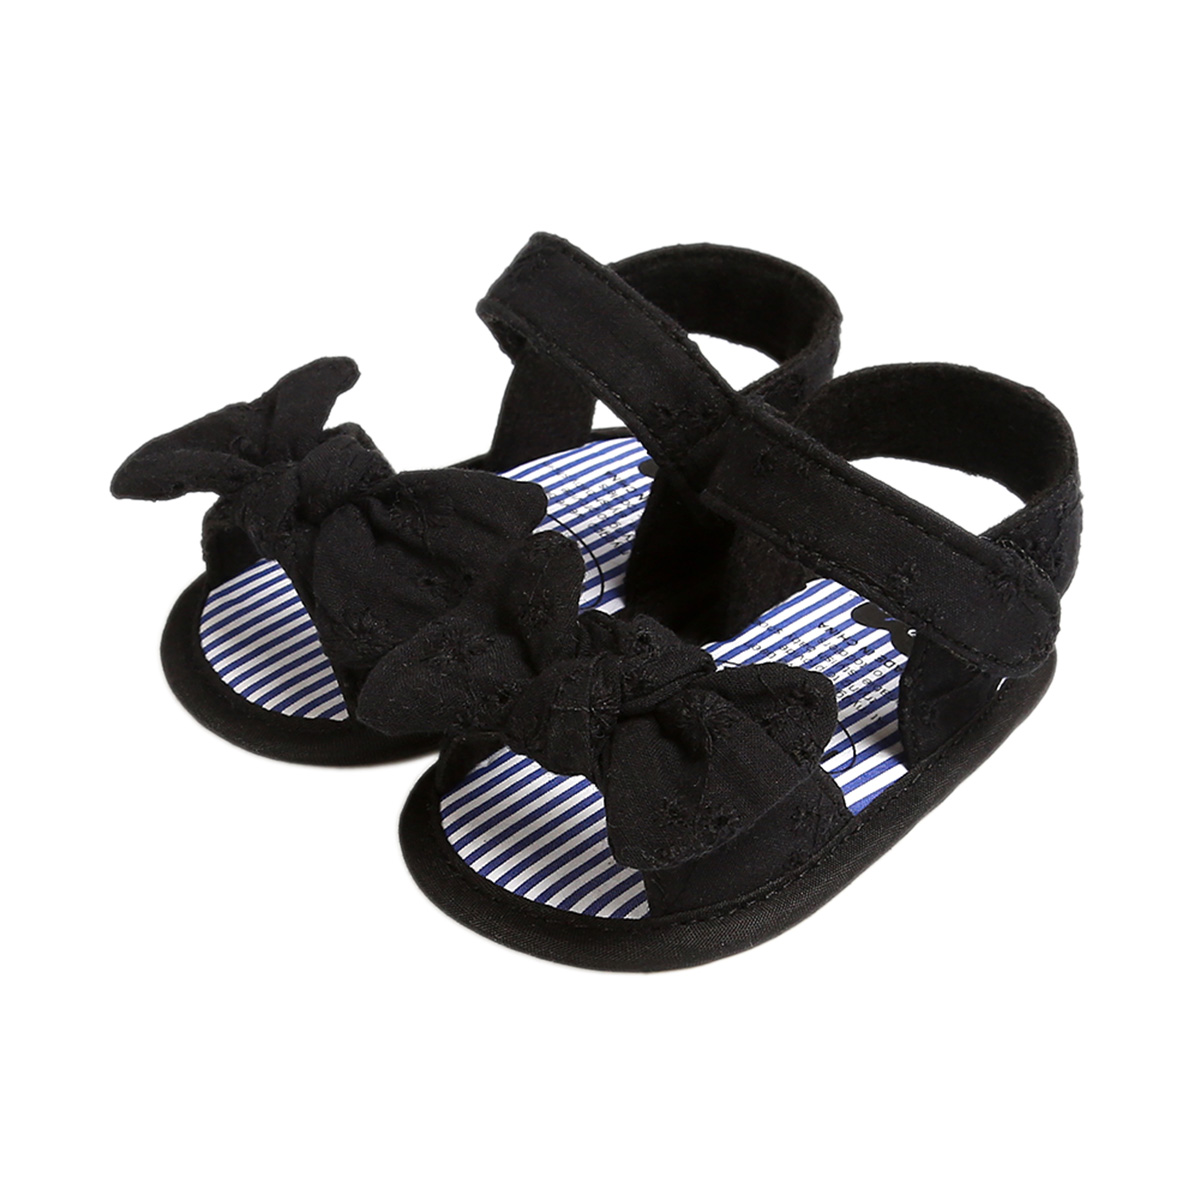 2020 Baby Summer Shoes Sandals Baby Girls Infant Soft Crib Shoes Cute Shoes Bowknot Solid Candy Color Ruffled Sandals 0-18M